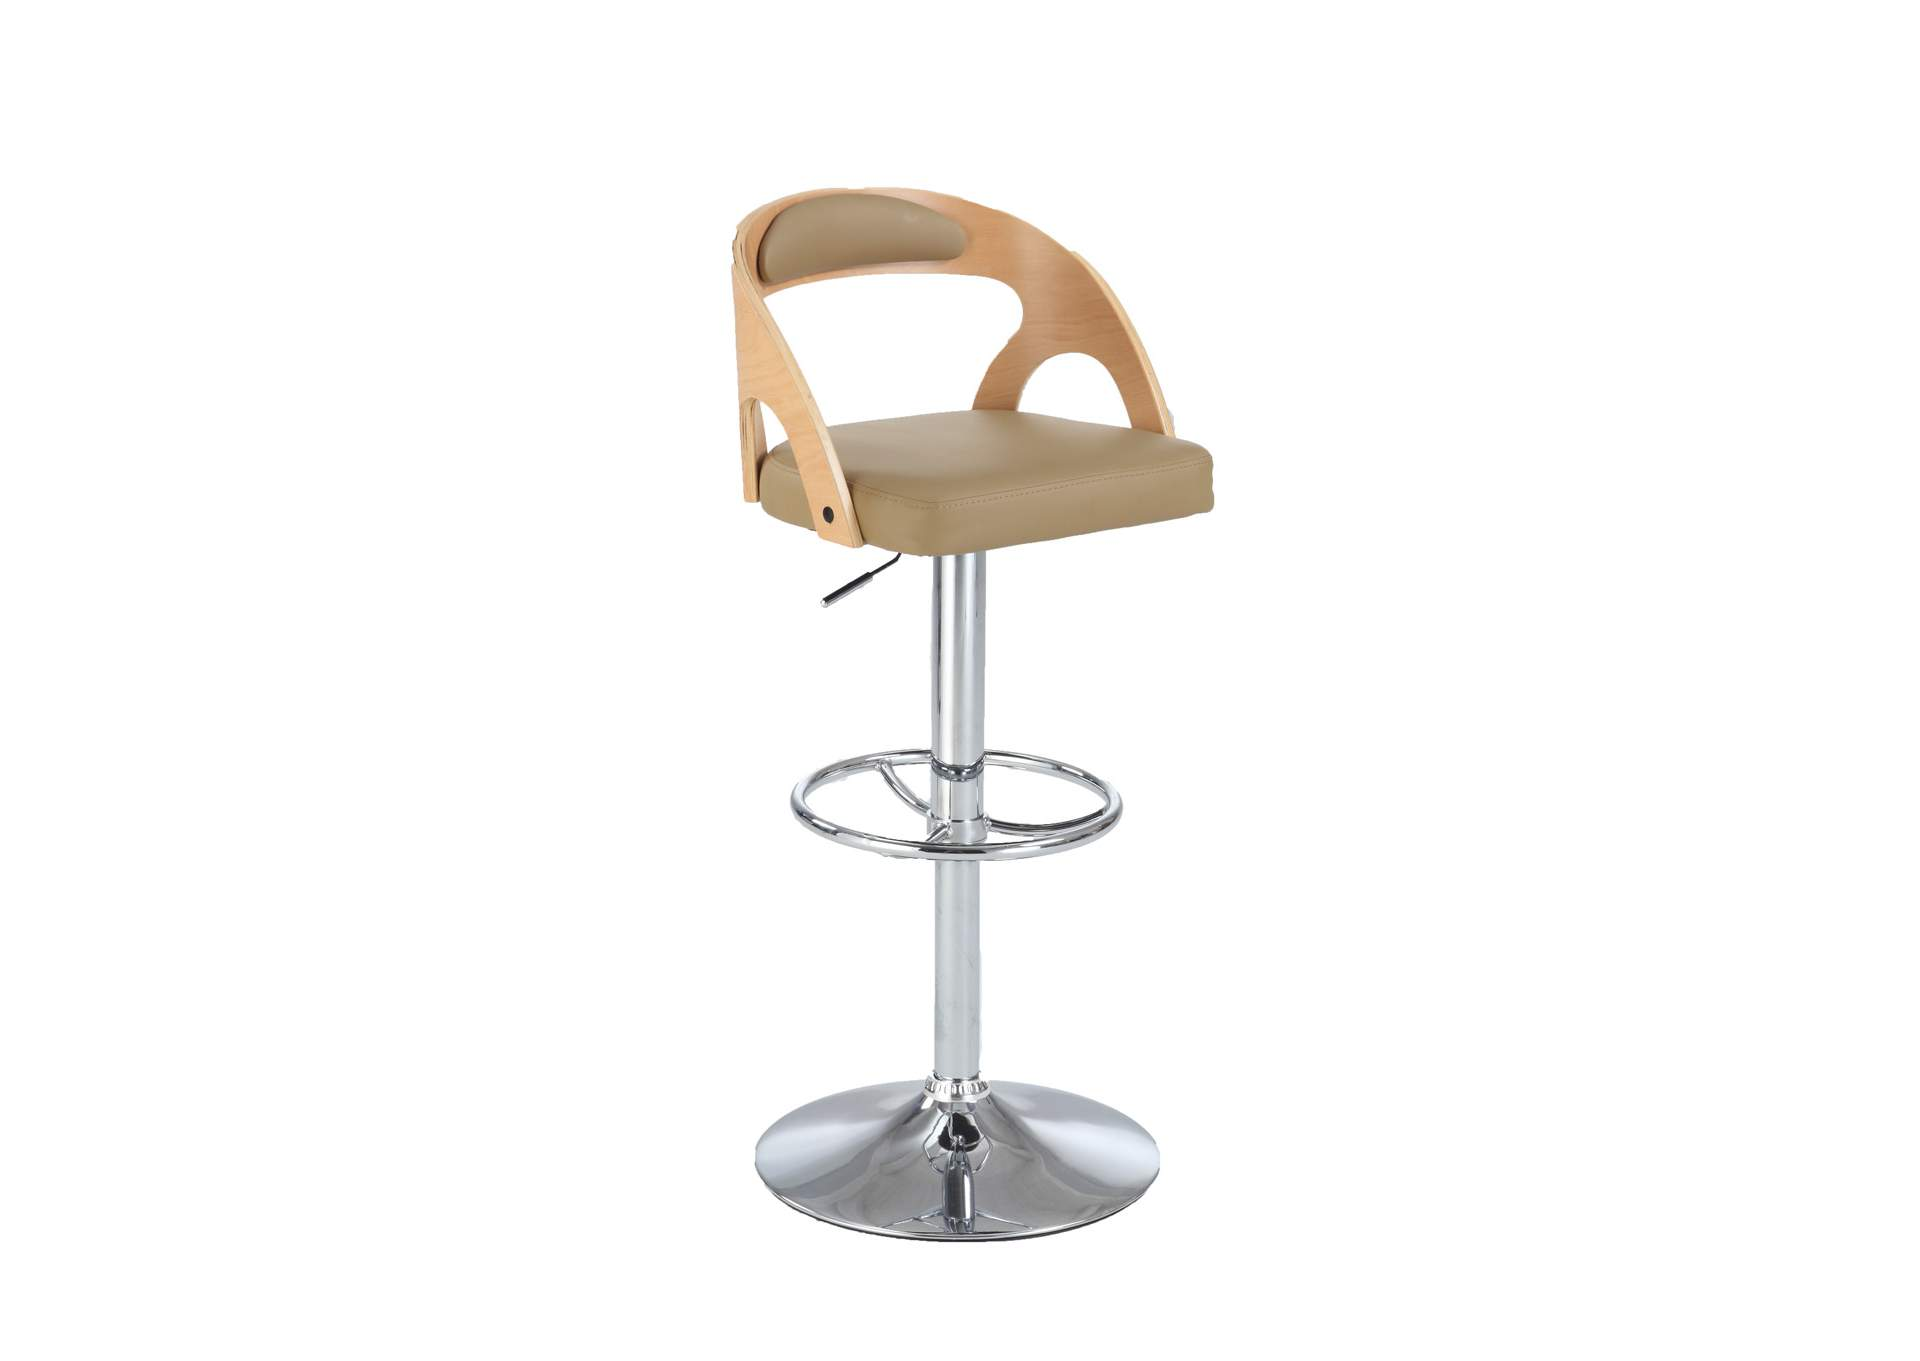 Beige Round Open-Back Pneumatic Stool,Chintaly Imports